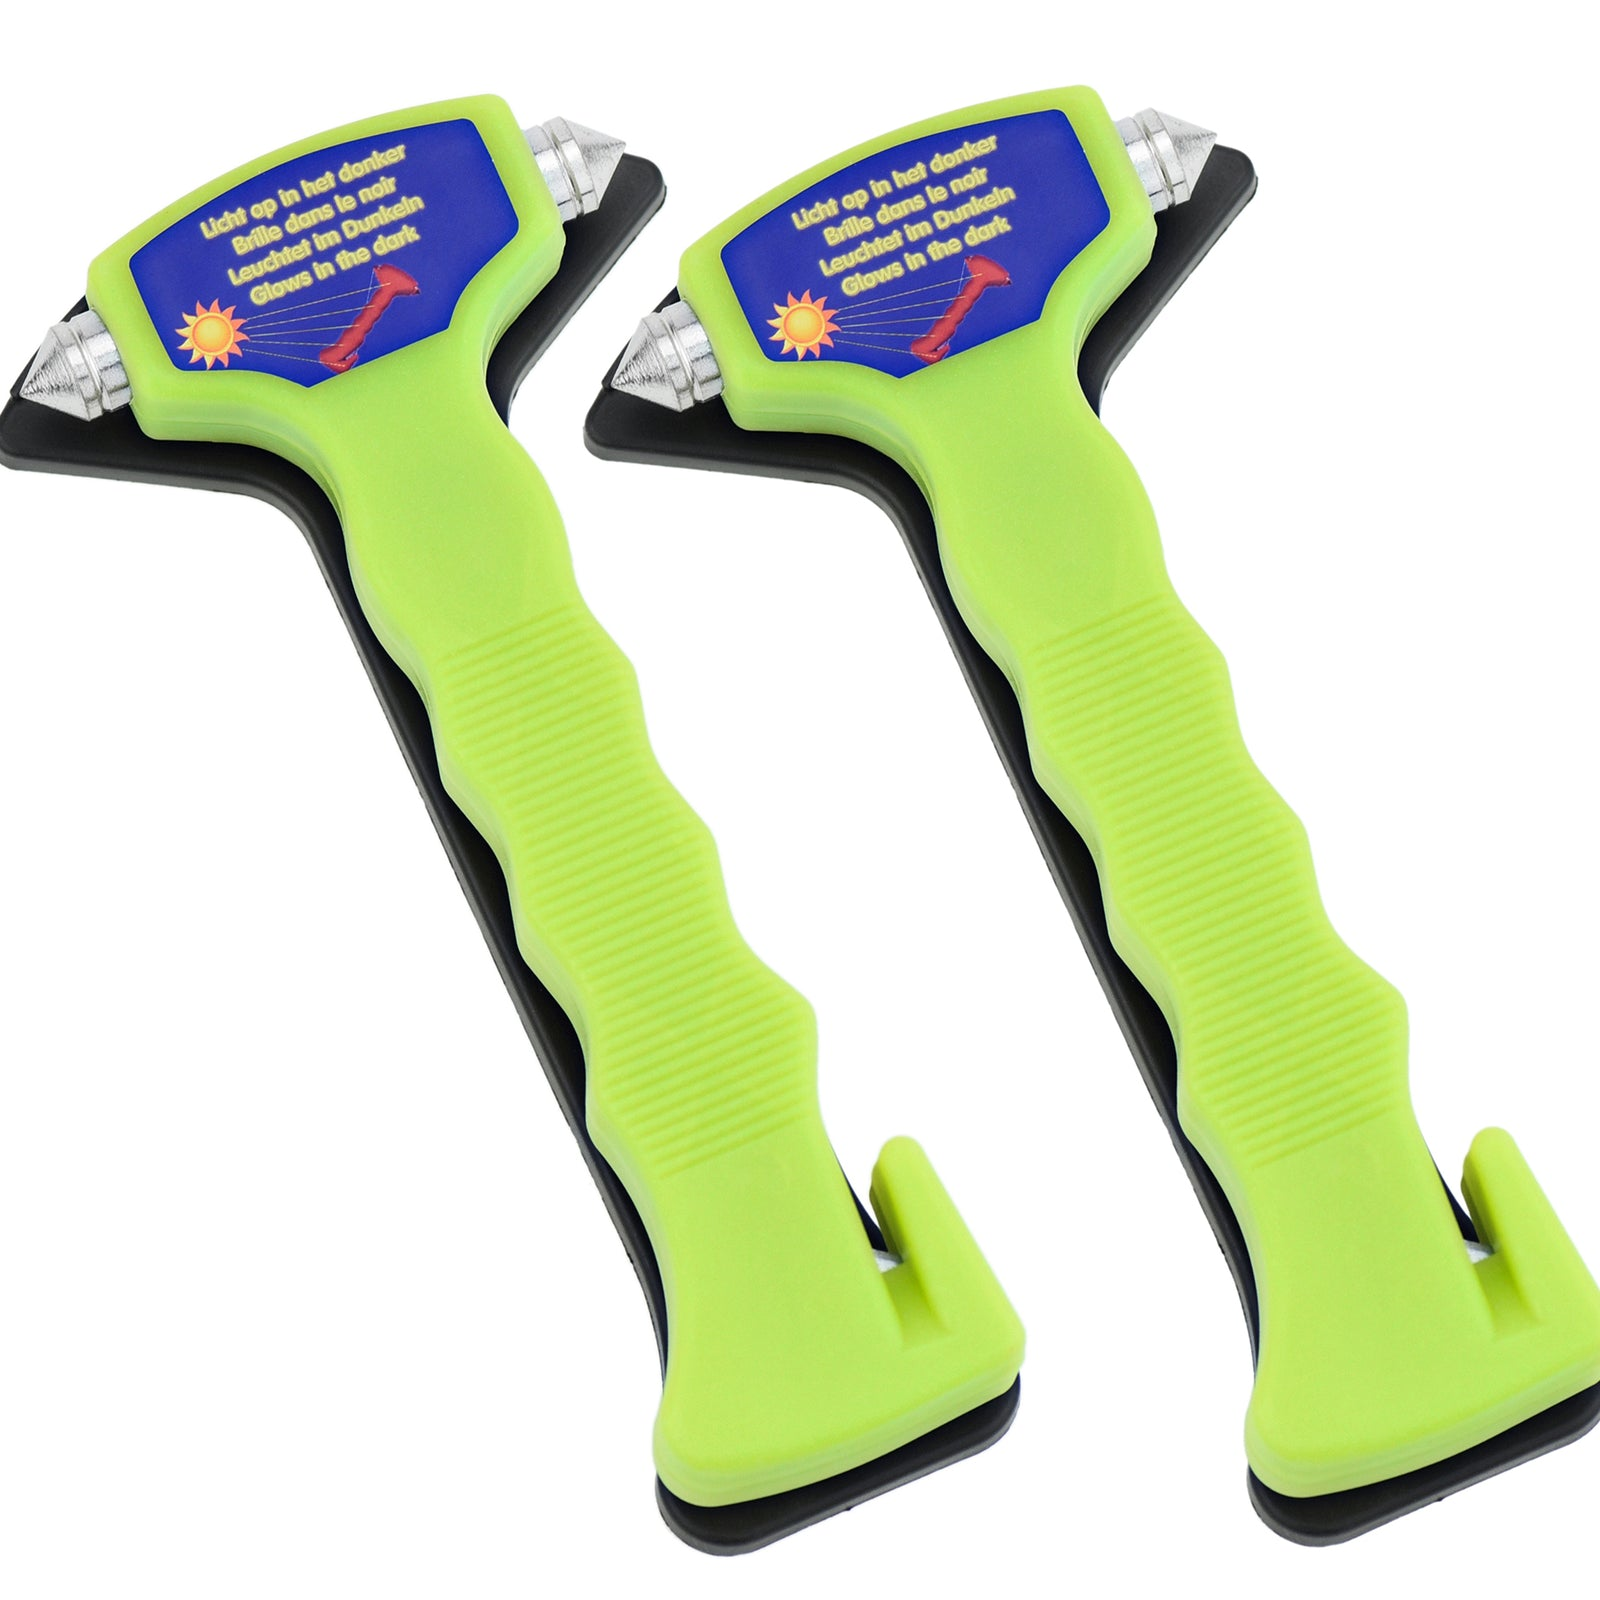 Two green emergency hammer placed in their own black mounting bracket. These hammers can glow in the dark.